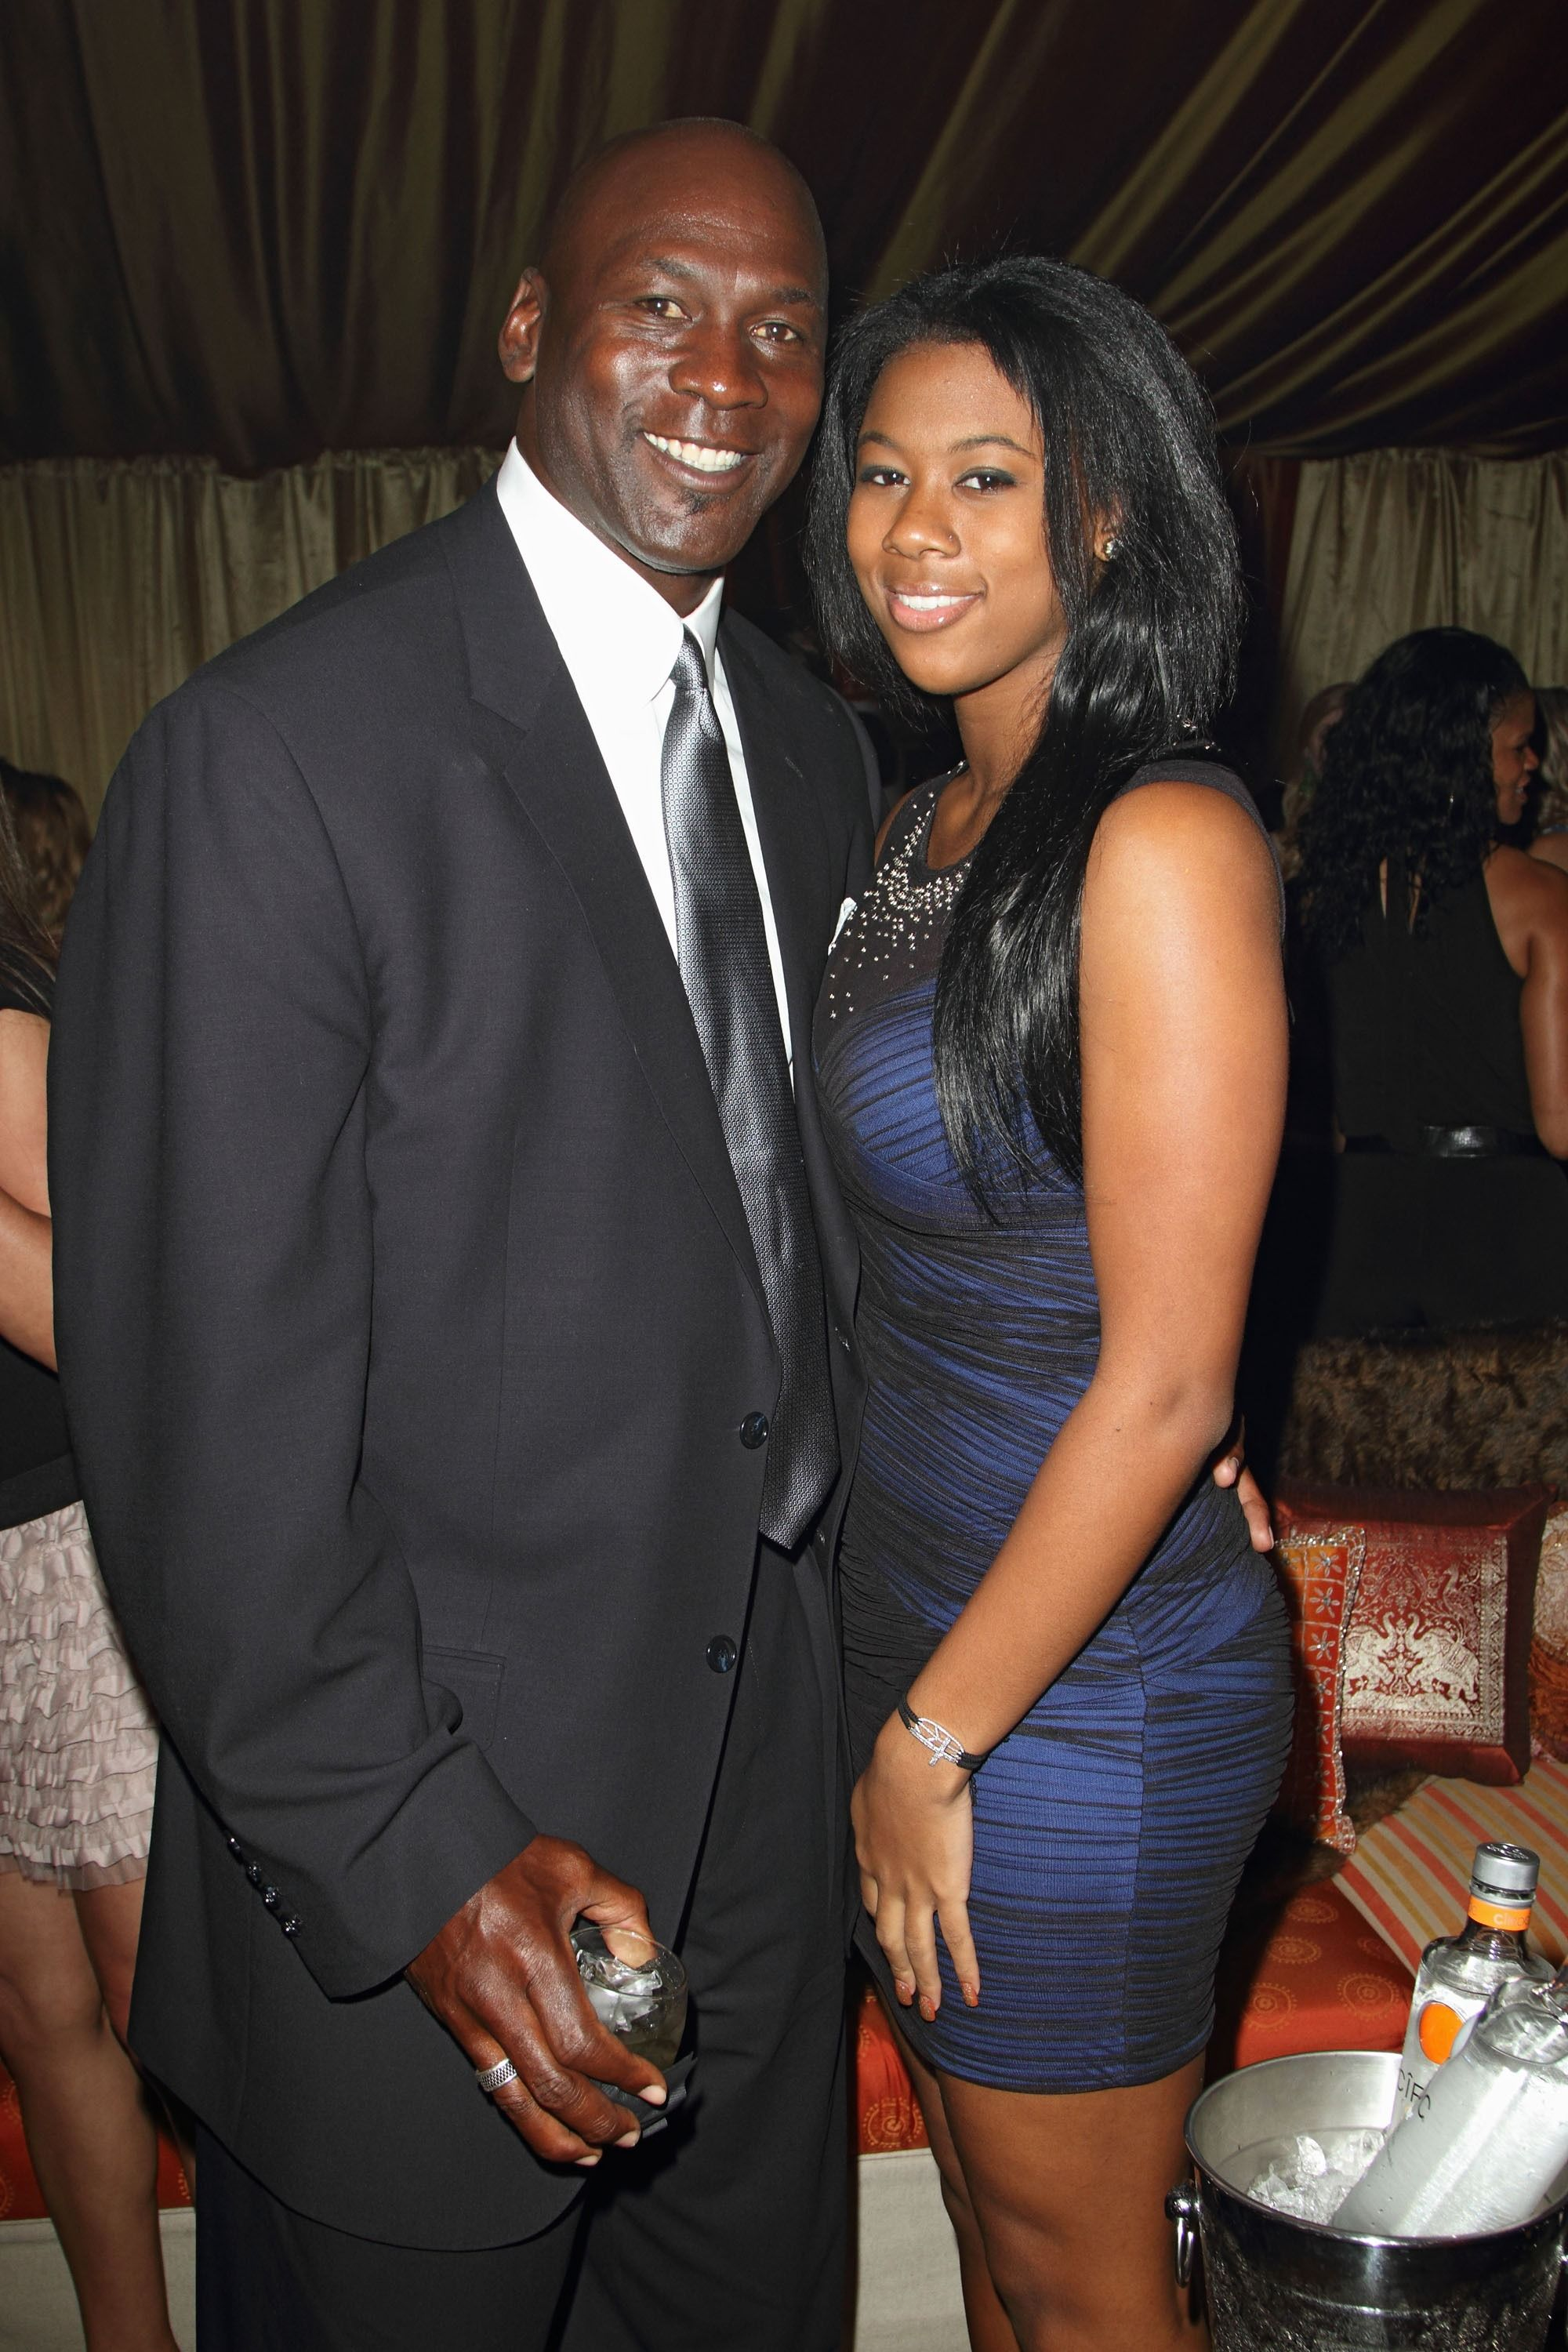 Michael Jordan and daughter Jasmine at Jordan All-Star With Fabolous 23 in 2012 in Florida | Source: Getty Images